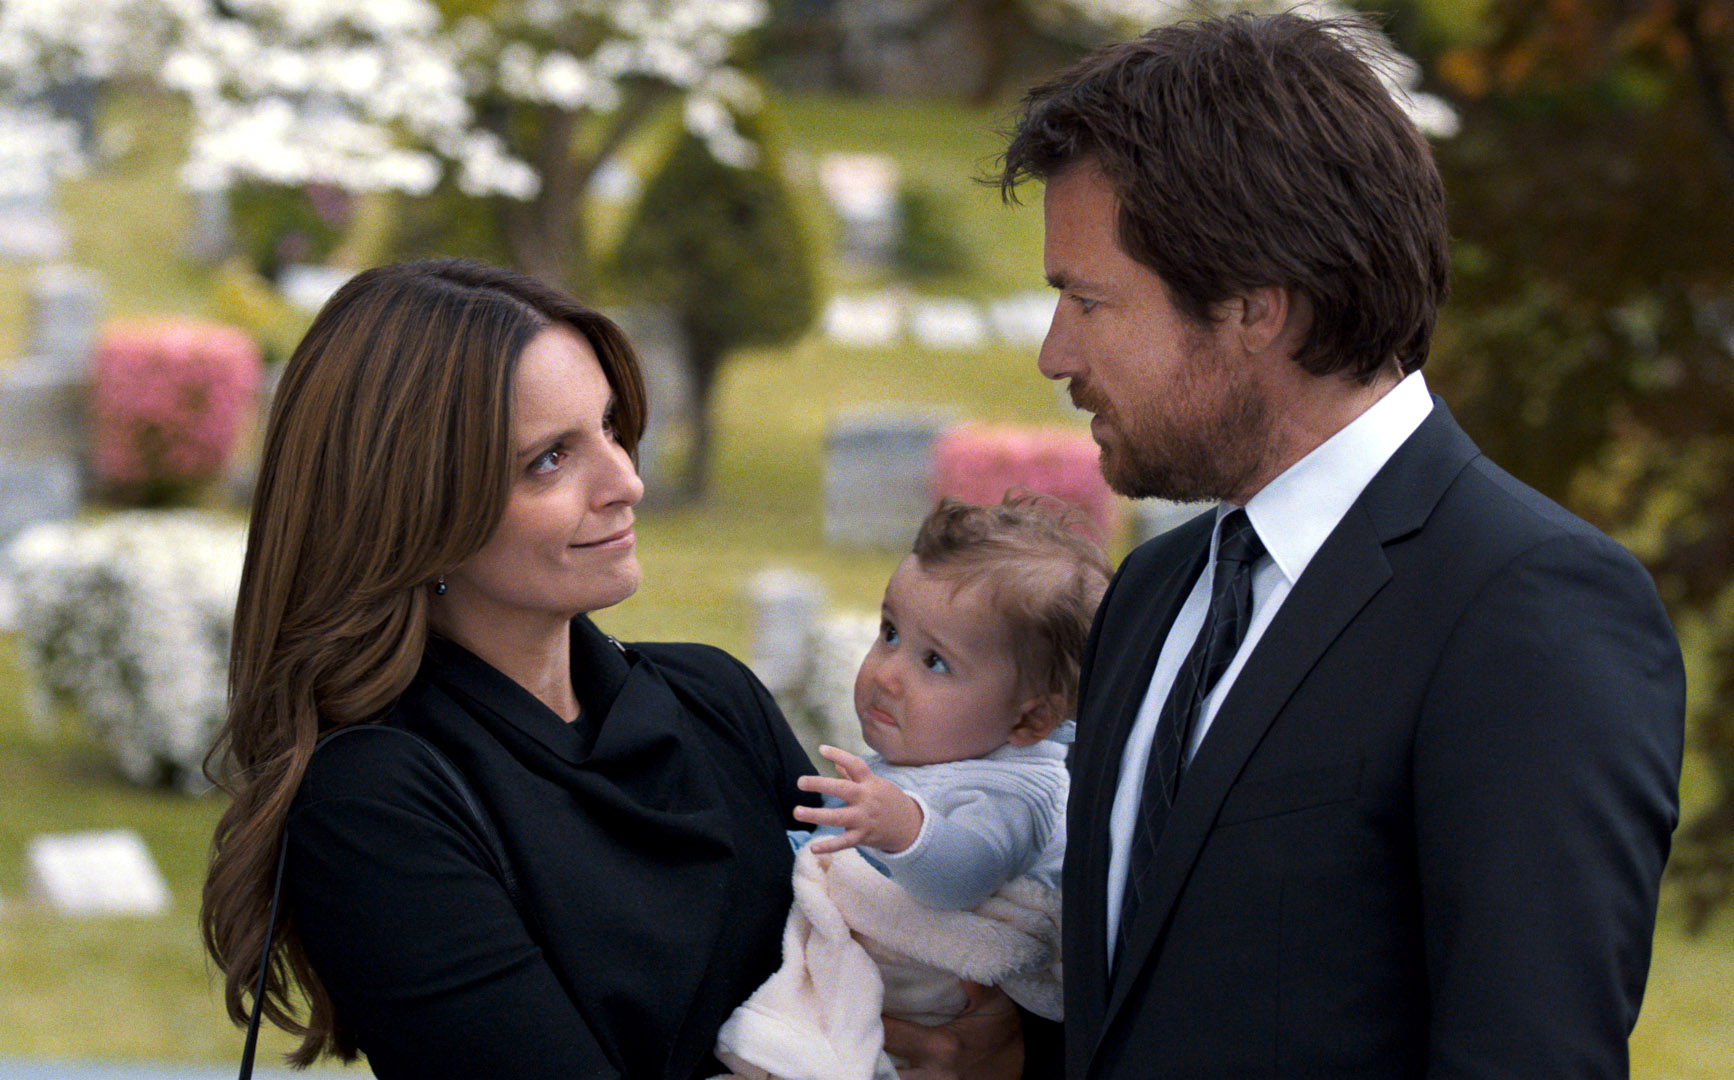 Oh, baby! Tina Fey and Jason Bateman are brilliant in the roles of Wendy and her brother Judd, but as the little one senses, there's something about the film that makes you want to scream.